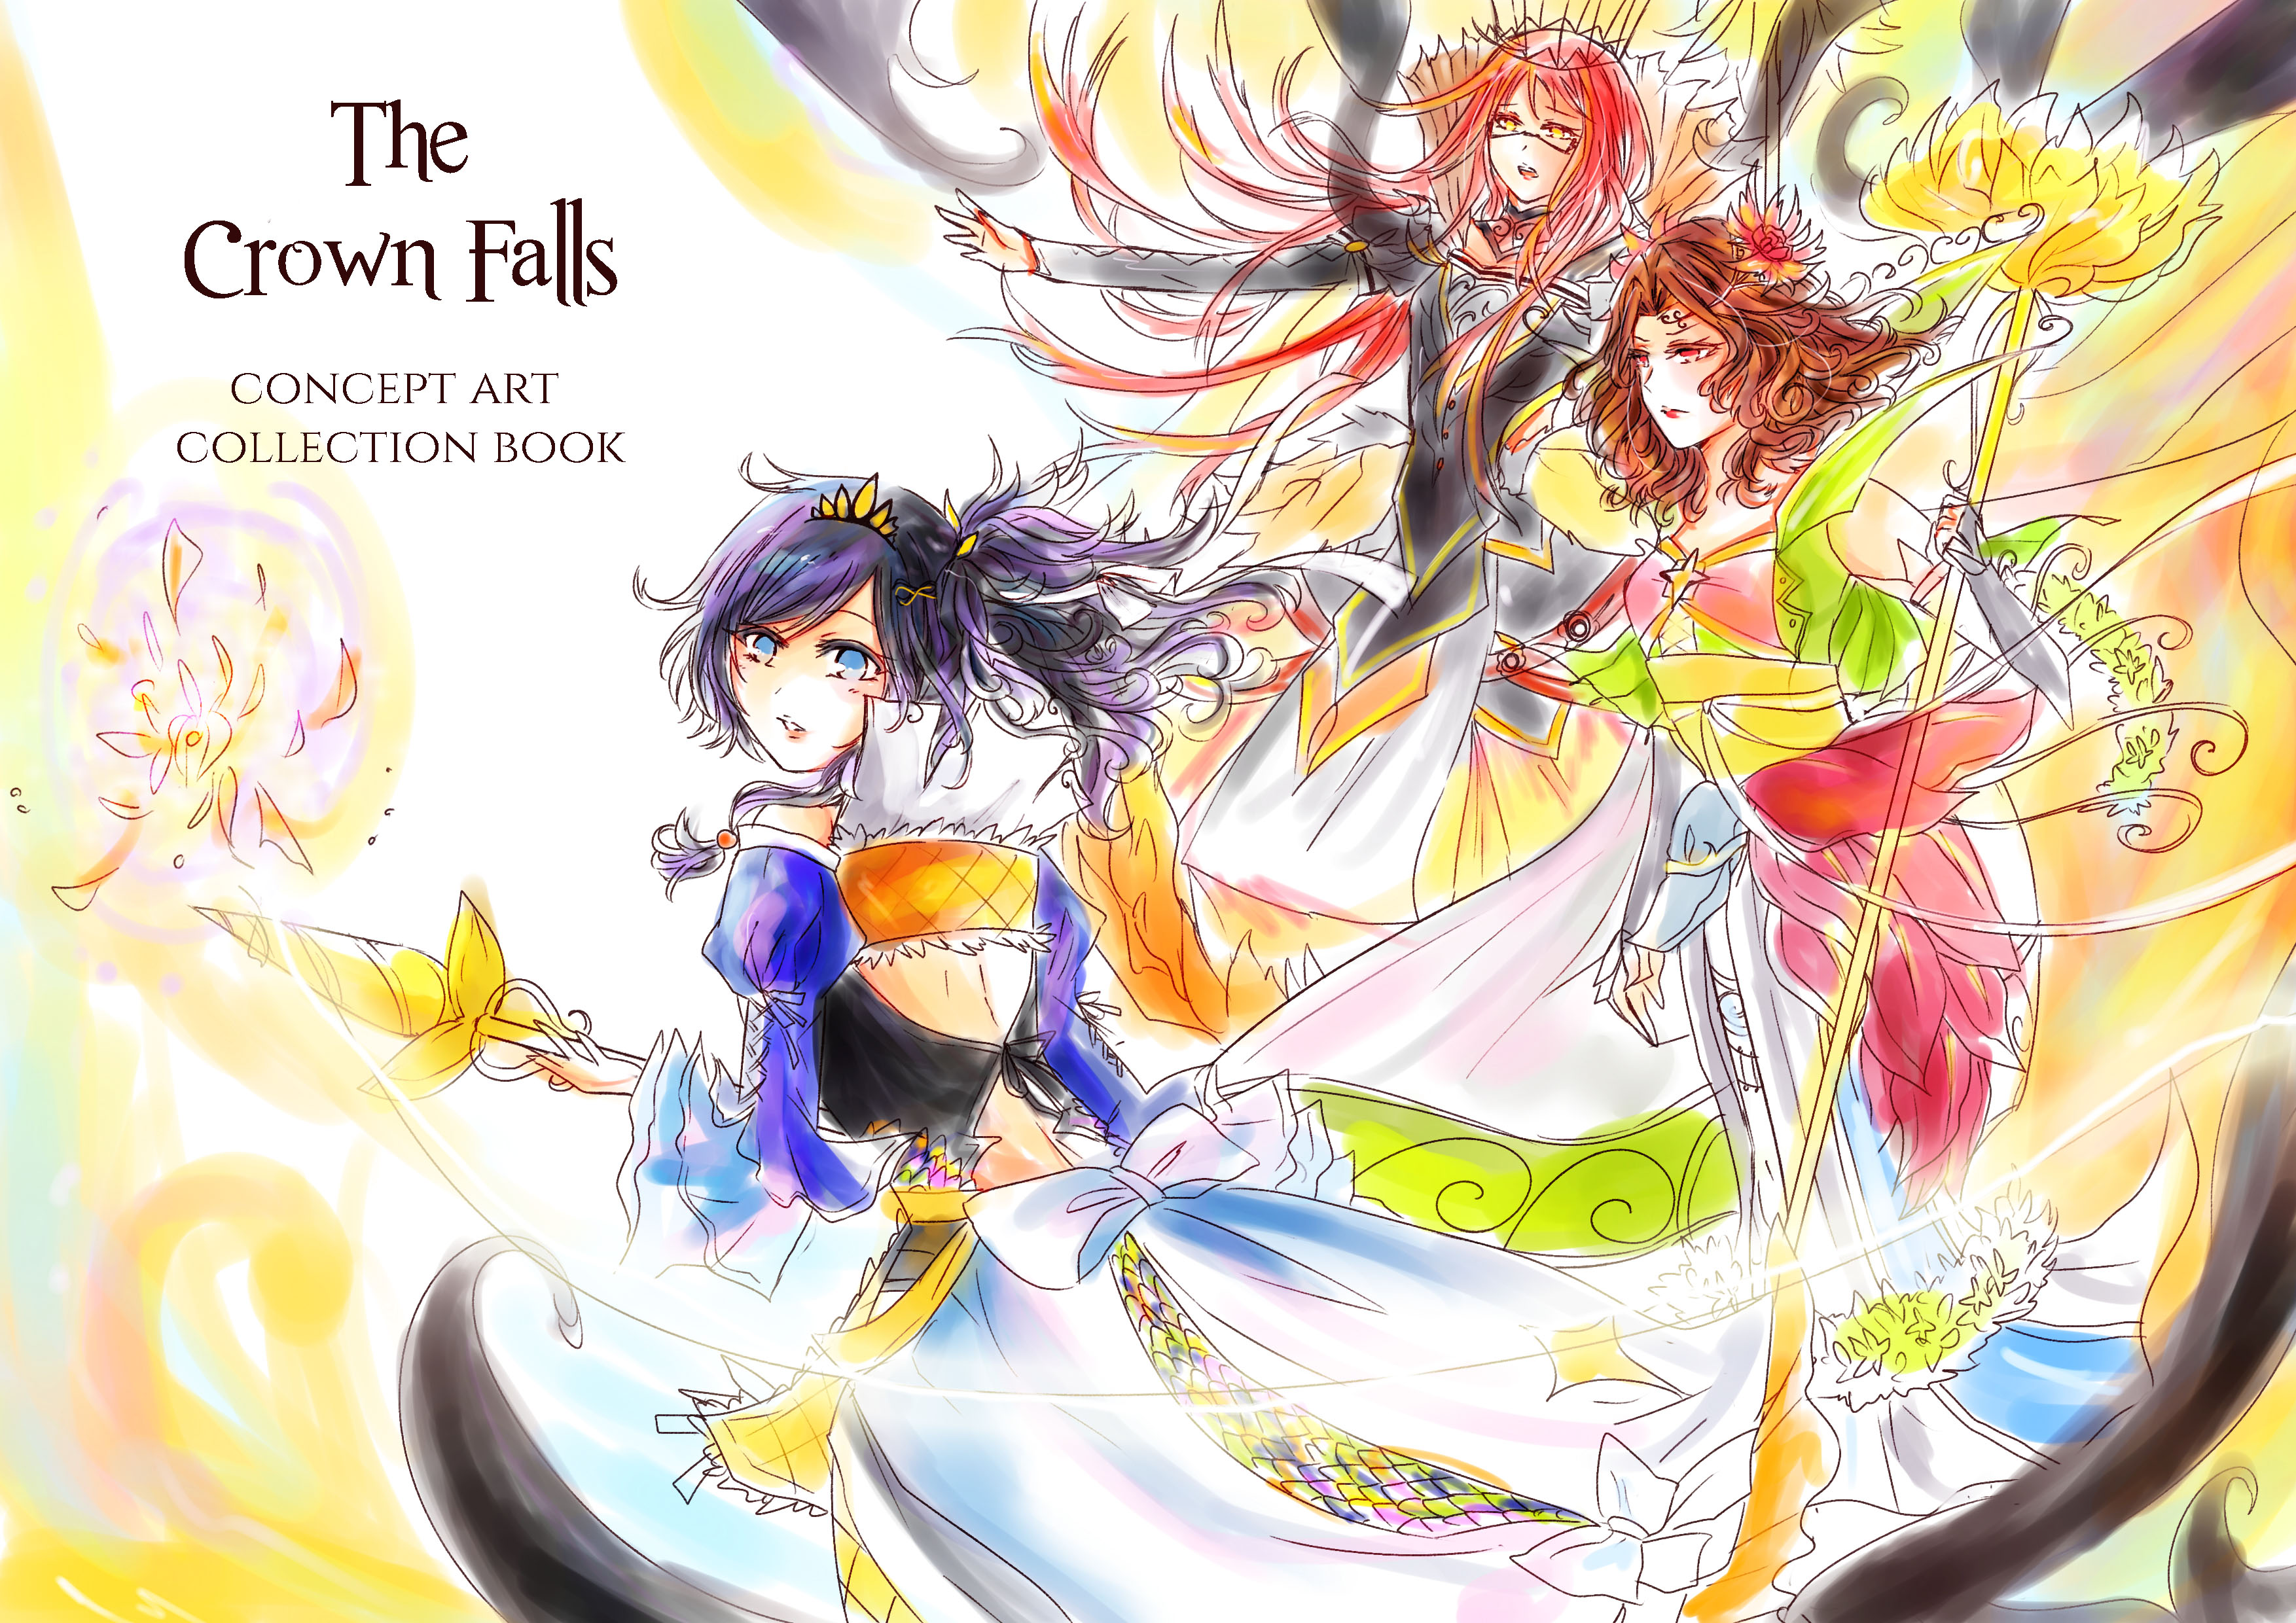 The Crown Falls